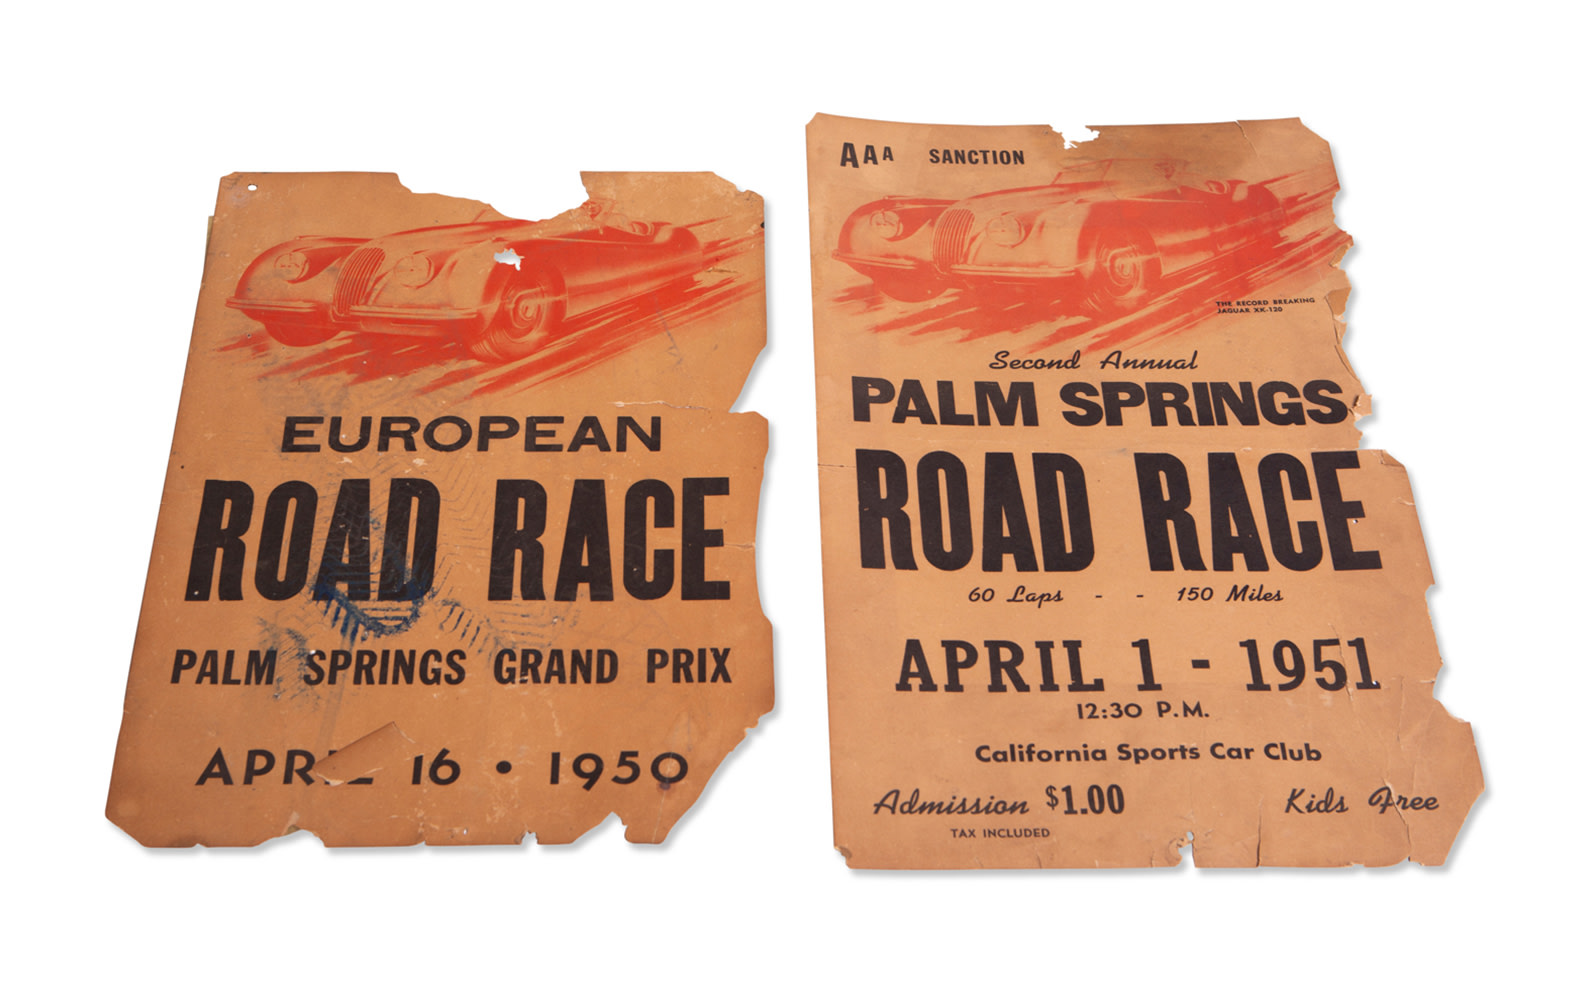 1950 and 1951 Palm Springs Road Race Posters, Unframed